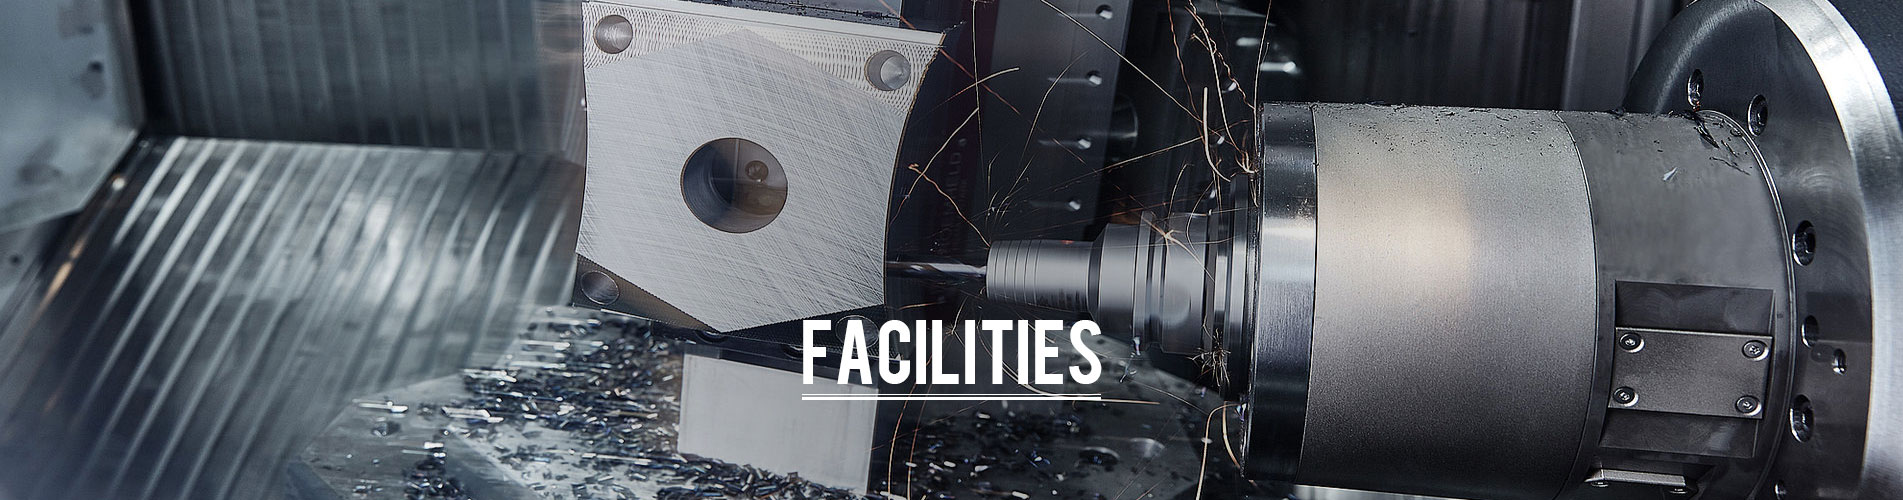 facilities banner 2